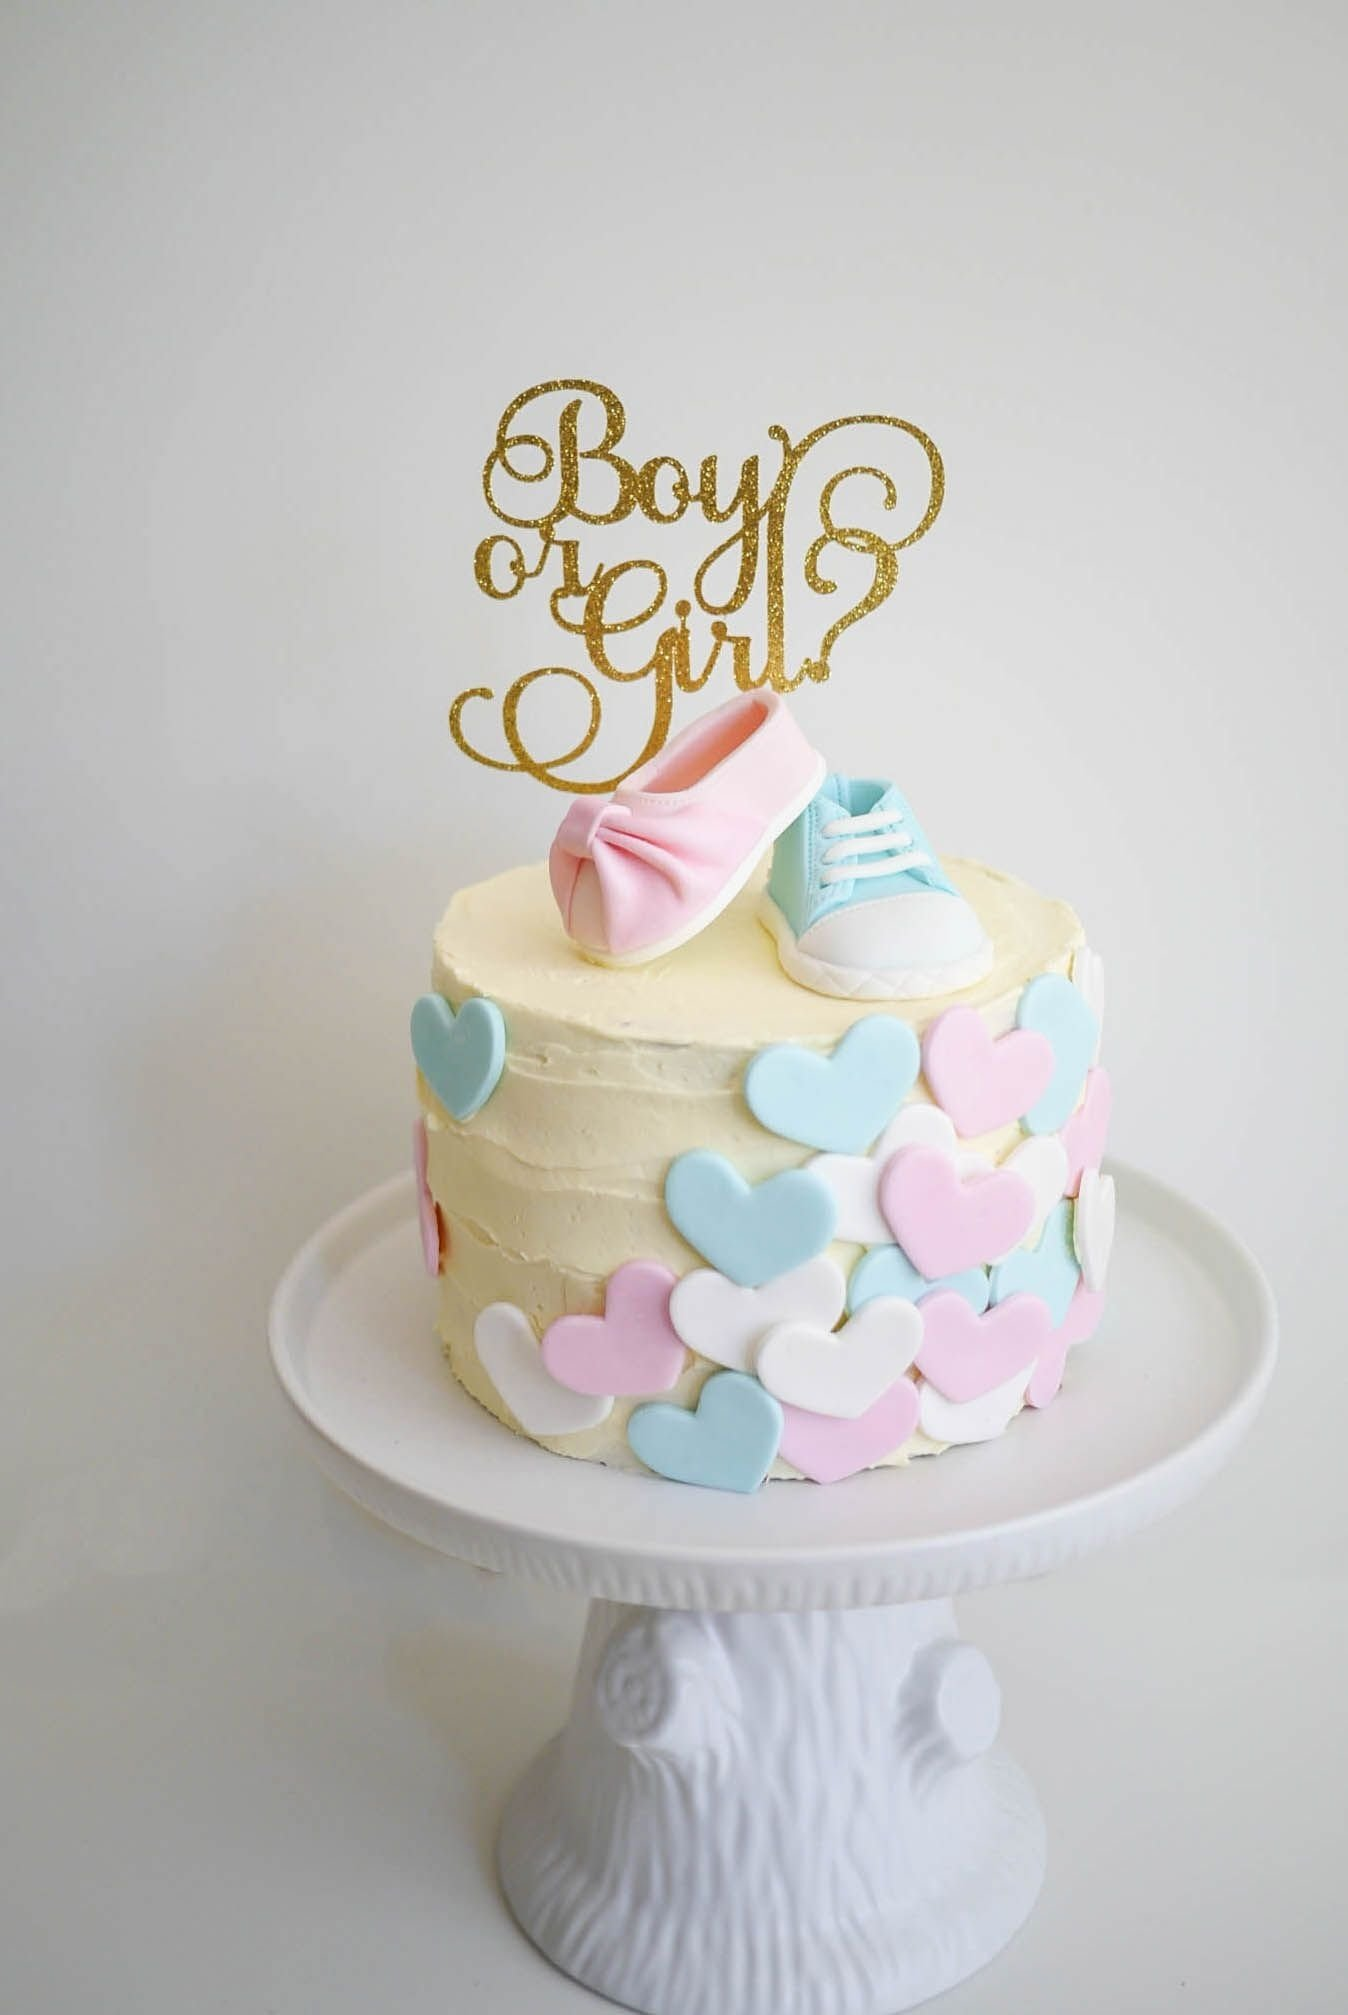 10 Stylish Gender Reveal Party Cake Ideas 27 gender reveal party food ideas while pregnant baby gender 2020